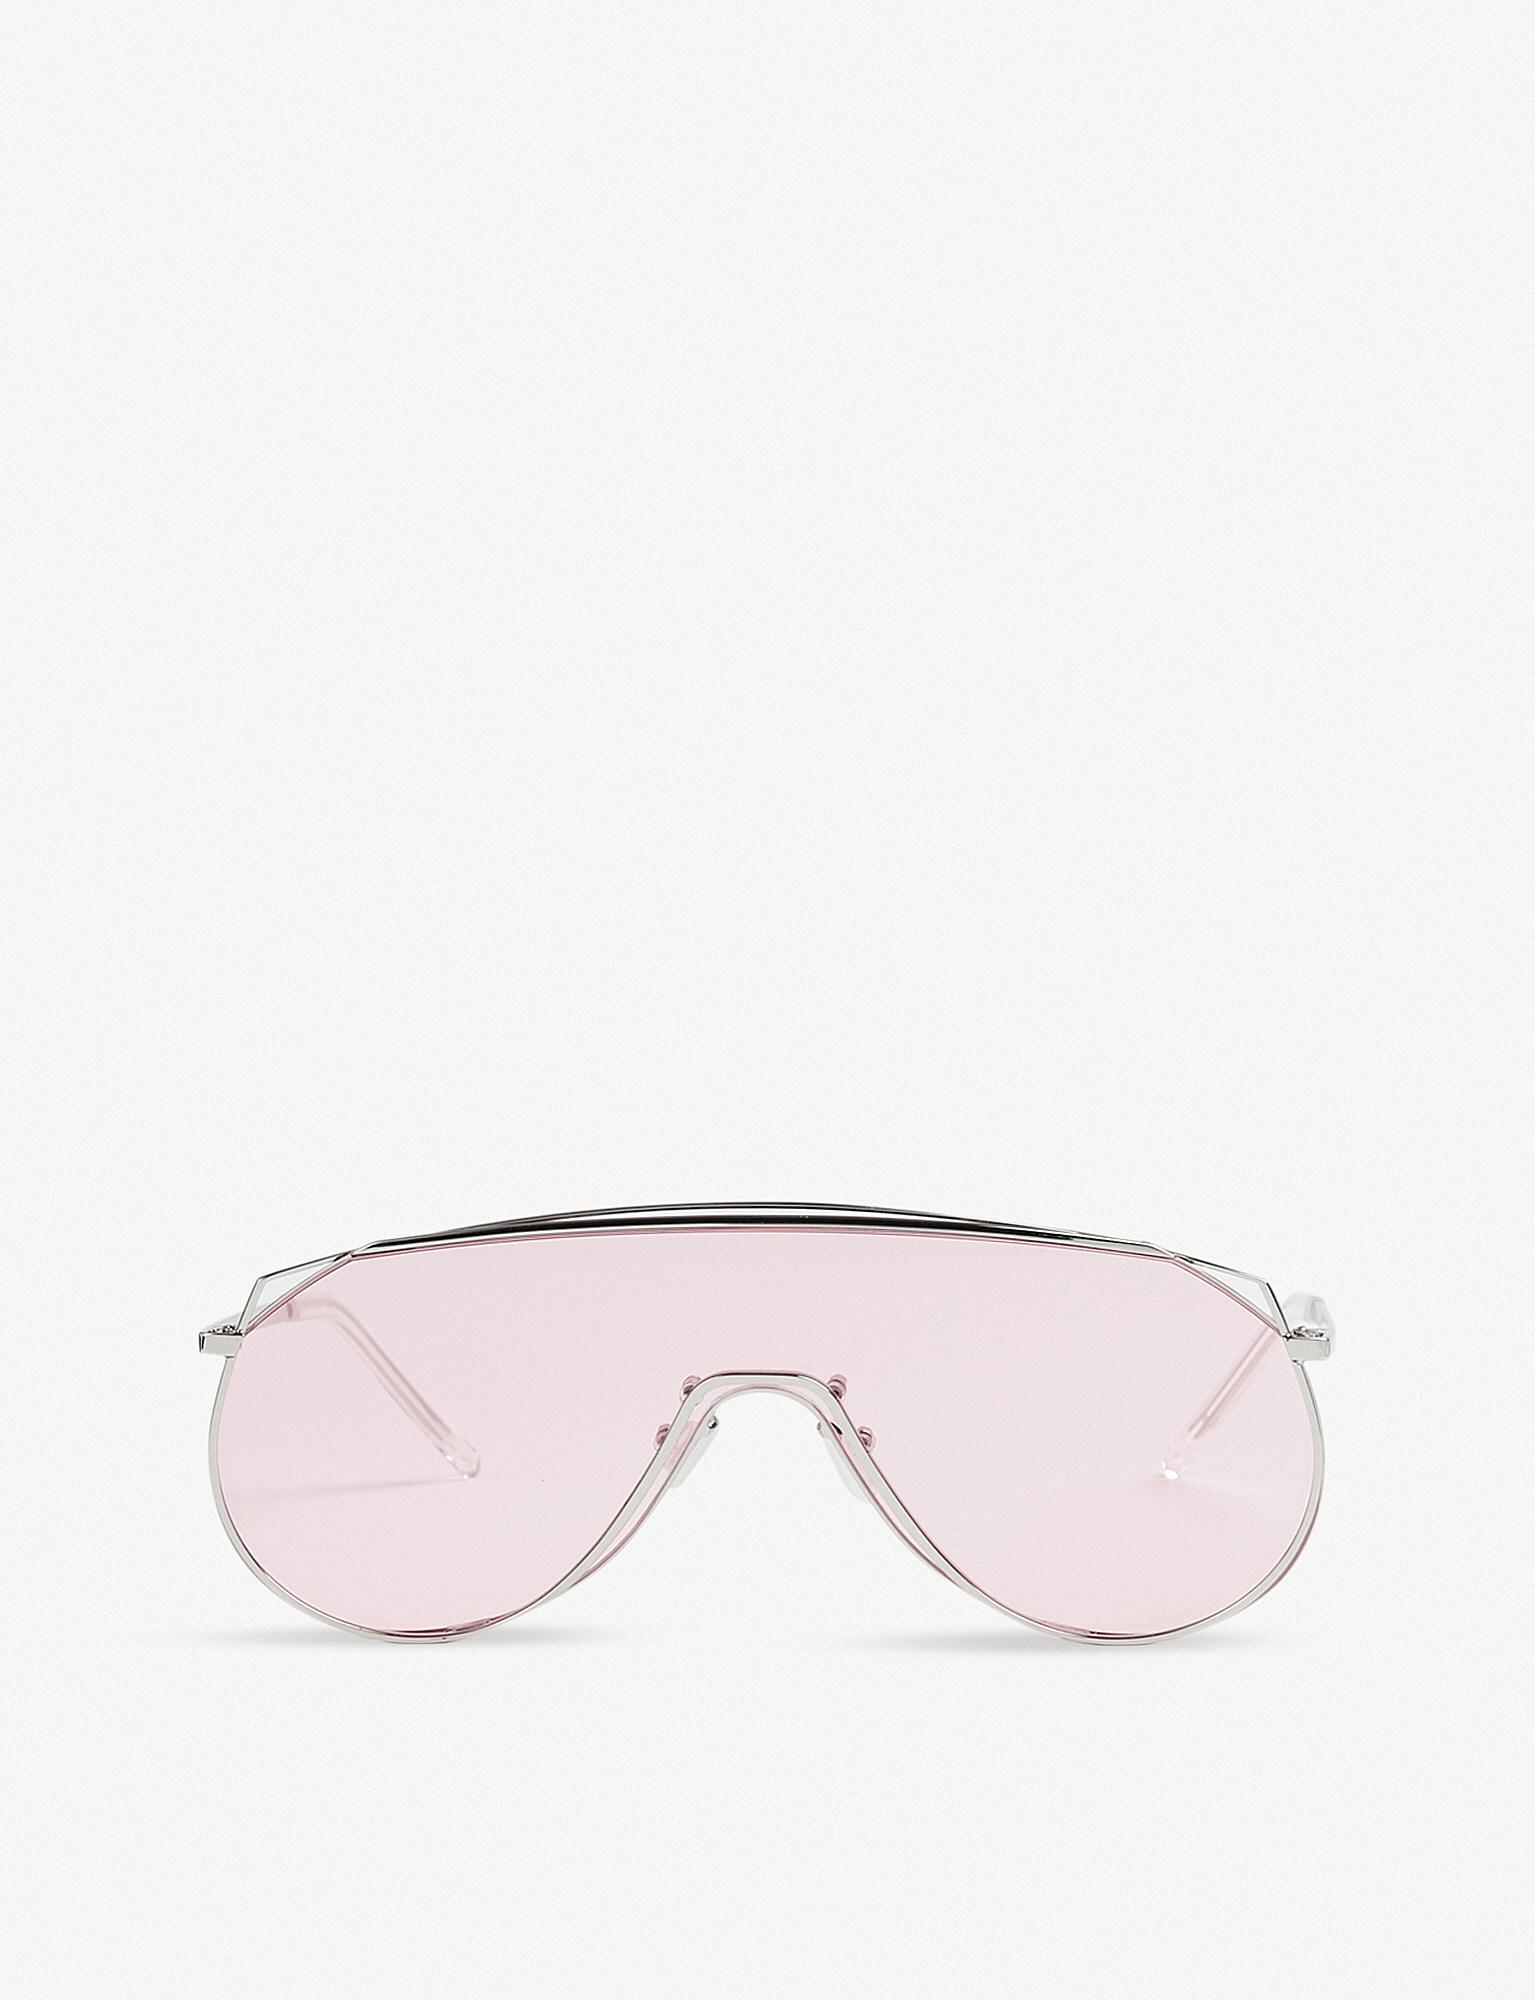 a902ff1ecef Lyst - Gentle Monster Afix Stainless Steel Sunglasses in Pink